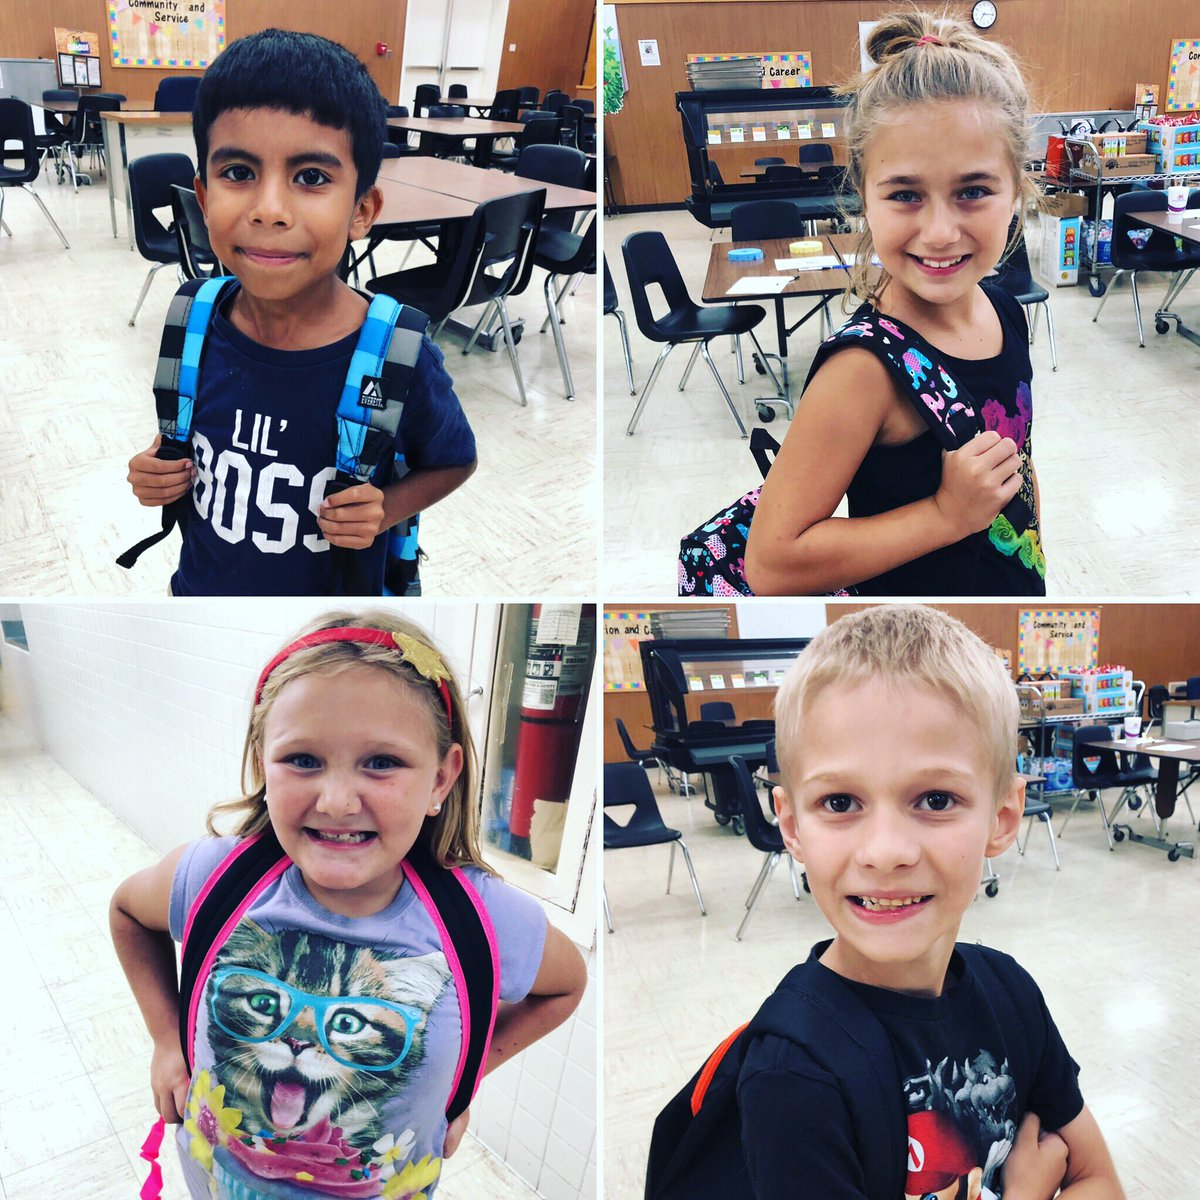 Not only did our 3rd-6th grade students who attended Bingo for Books get a TON of books to take home, they each got a NEW backpack! A perfect way to get all those books home  #readeveryday #bingoforbooks #IAMWashington<br>http://pic.twitter.com/RxSsptWmFC